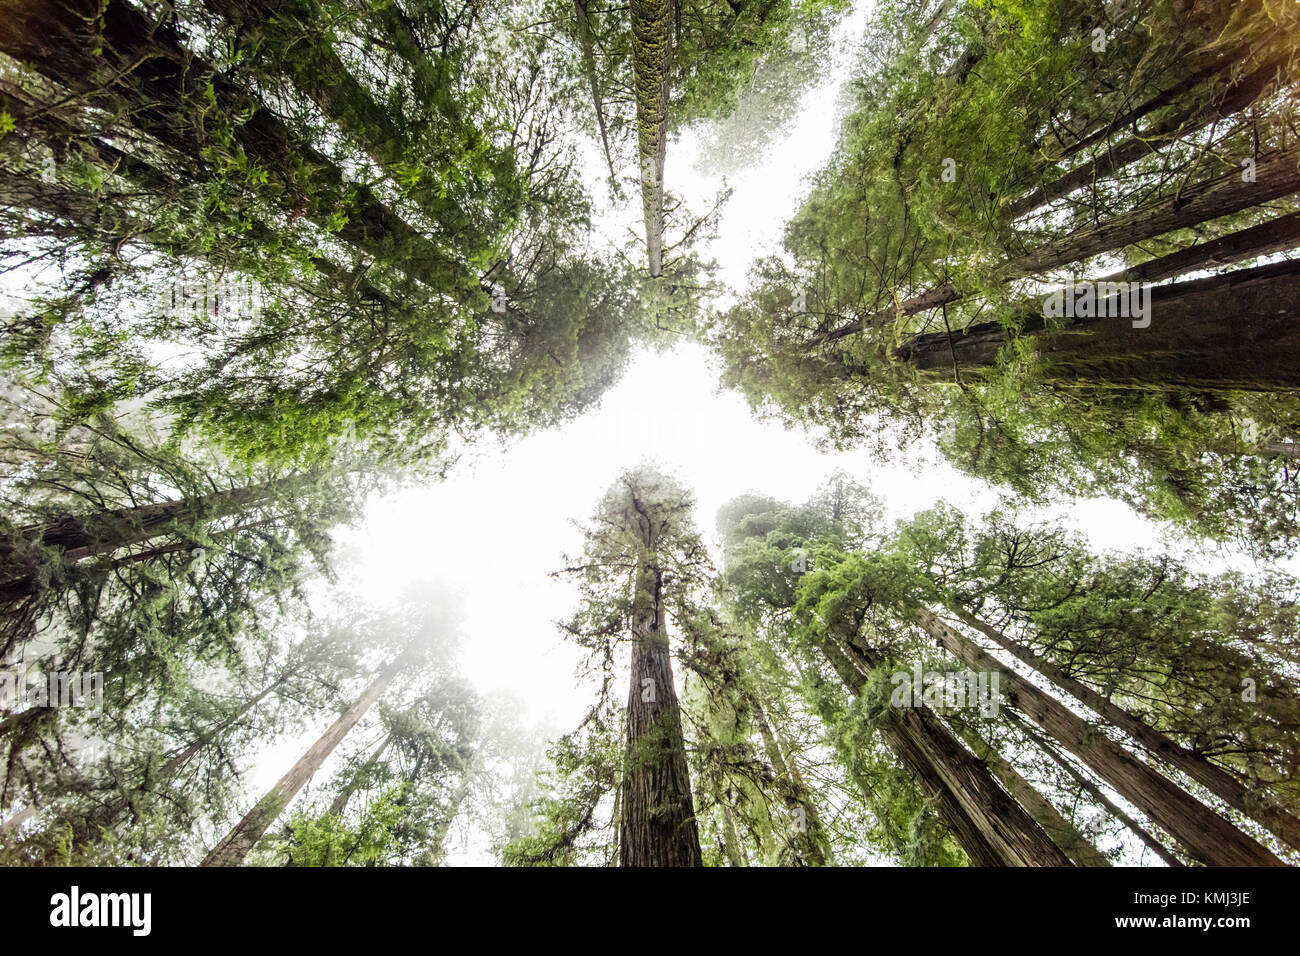 Giant Redwood trees in Prairie Creek Redwoods State Park, California - Stock Image